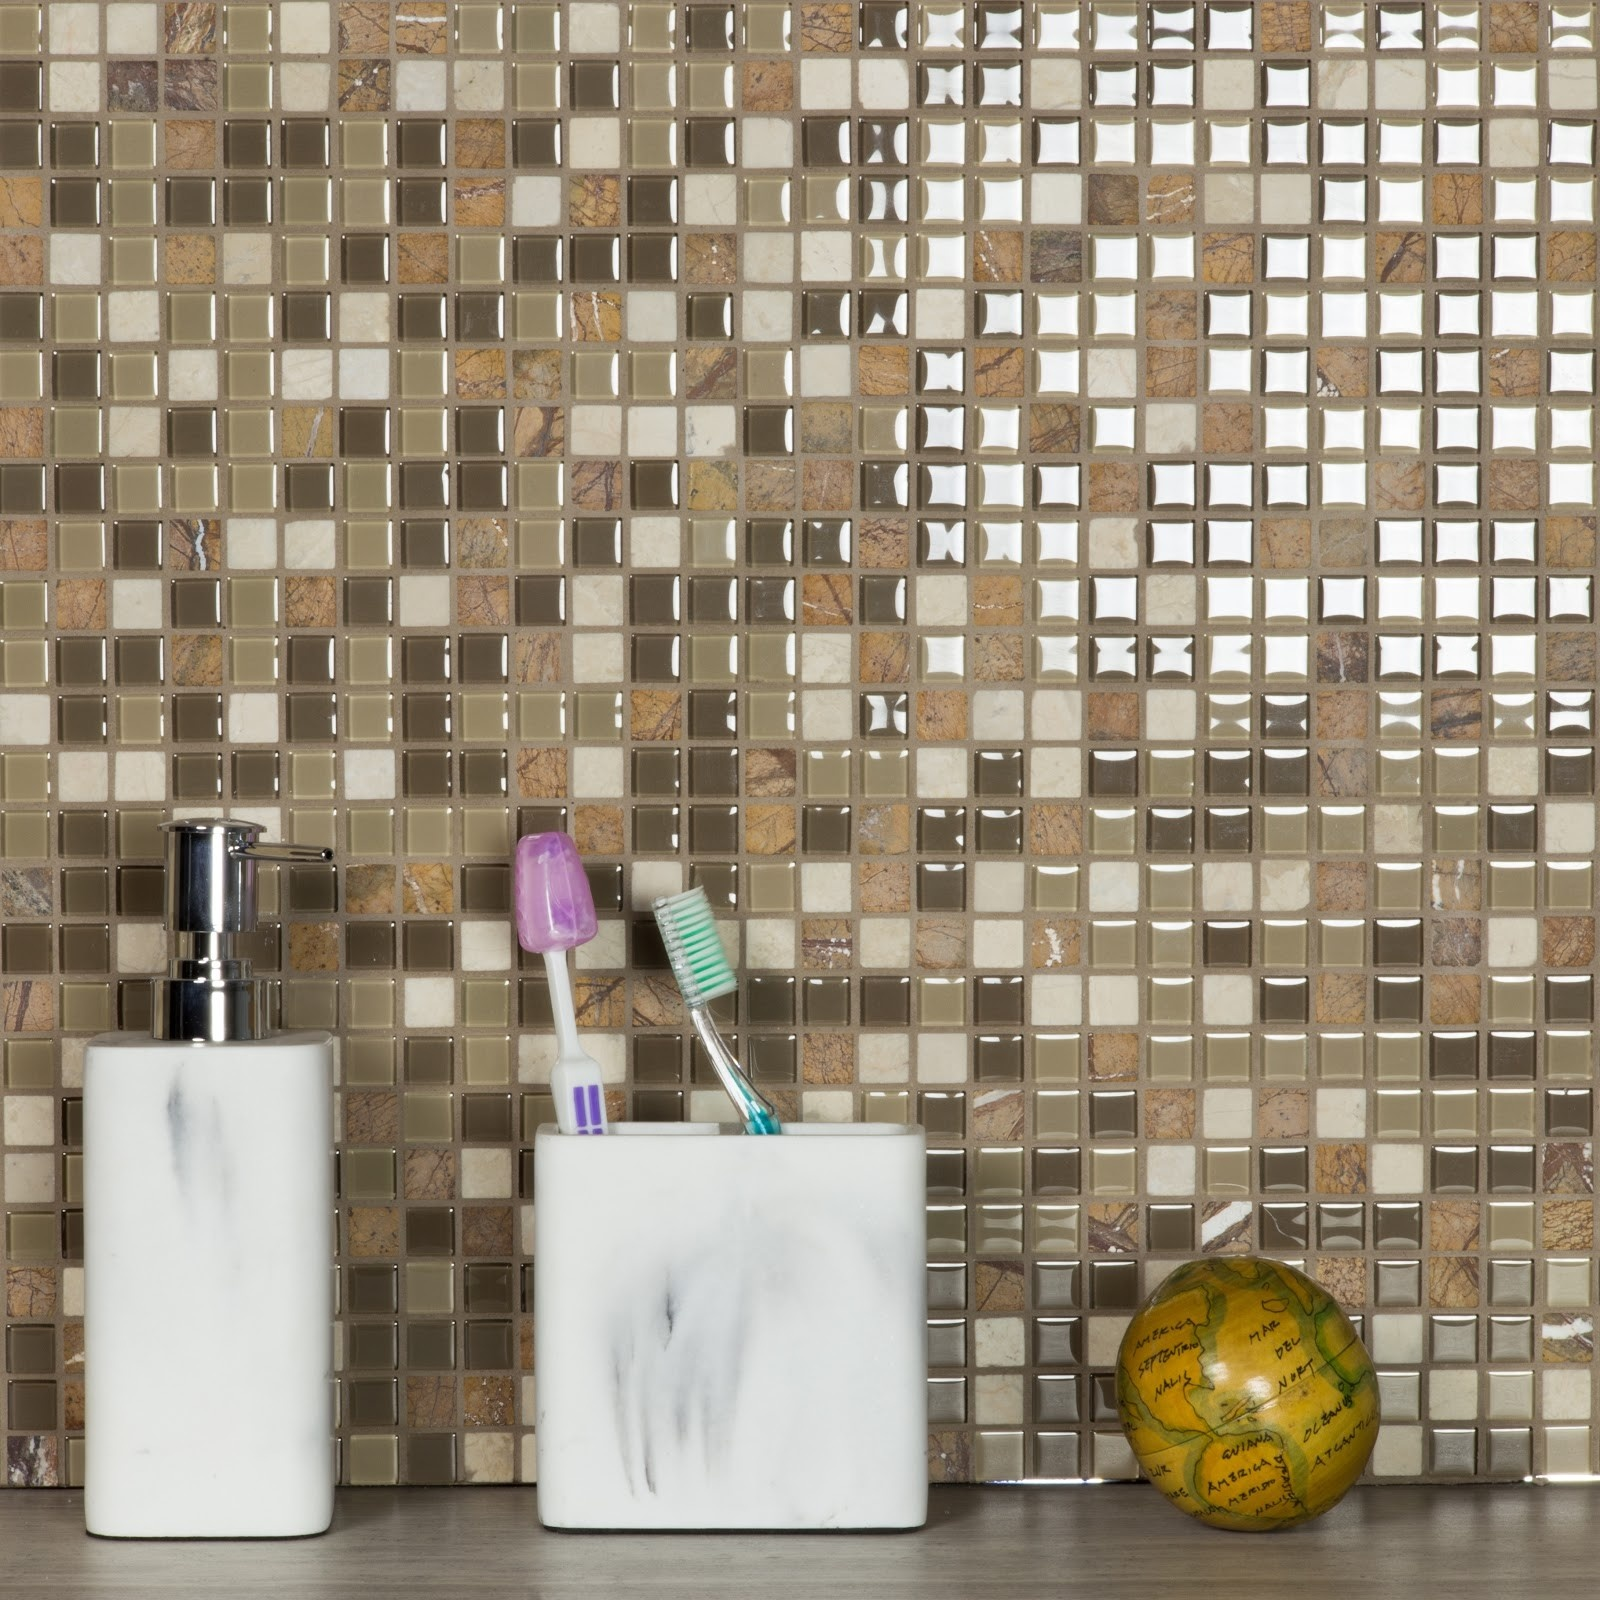 "Crystal Stone 0.625"" x 0.625"" Multi Finish Brown Glass and Stone Square Backsplash Mosaic Wall Tile"